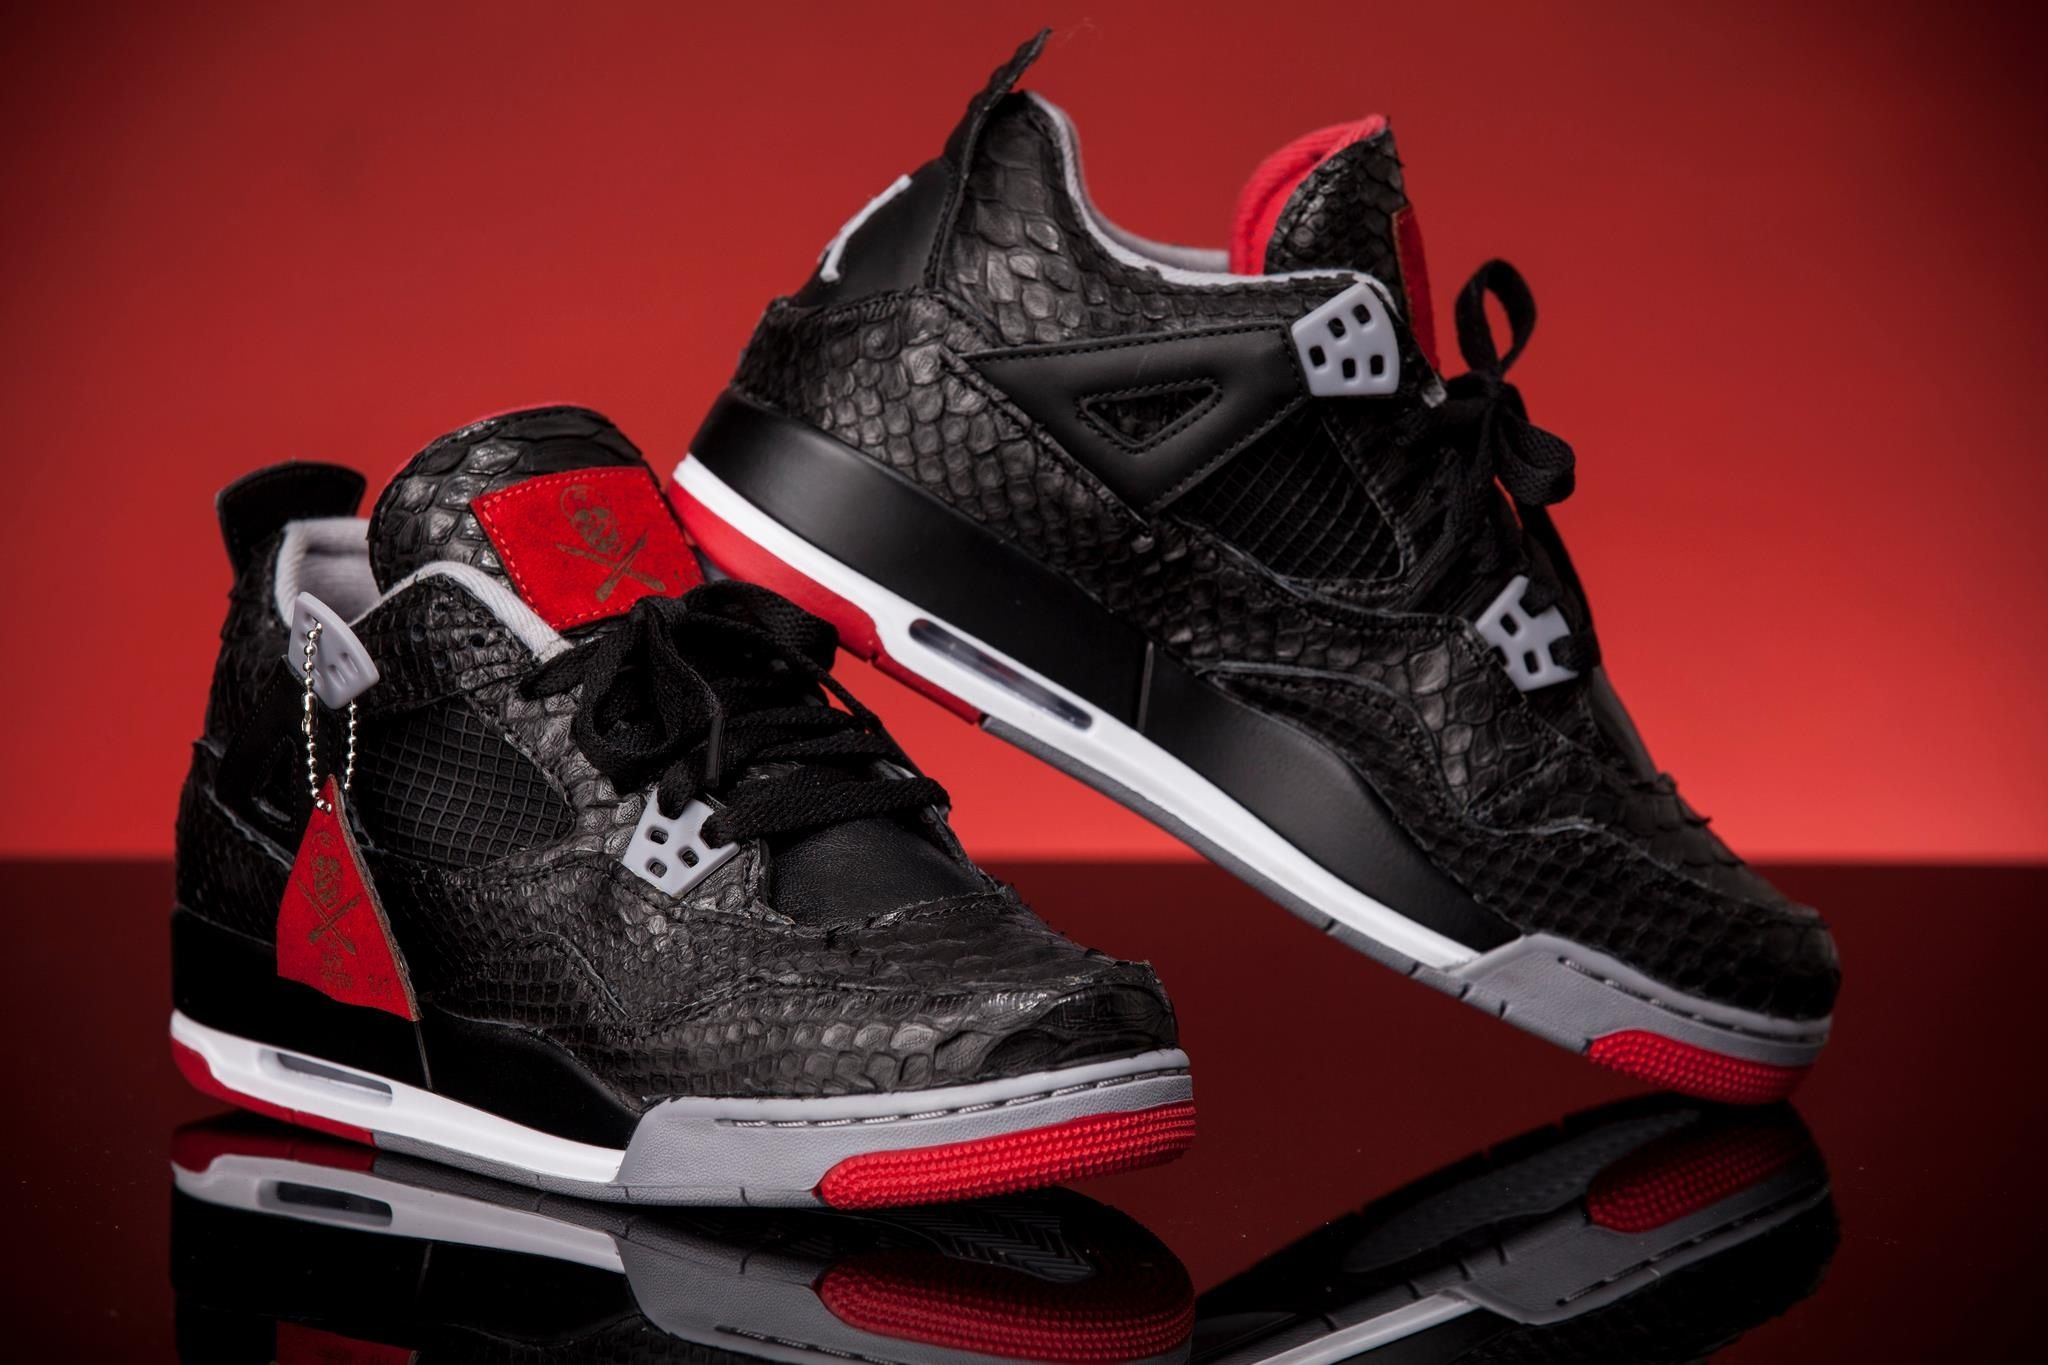 9ed4514a2d823f Jordan IV Bred Python leather - custom by the shoe surgeon